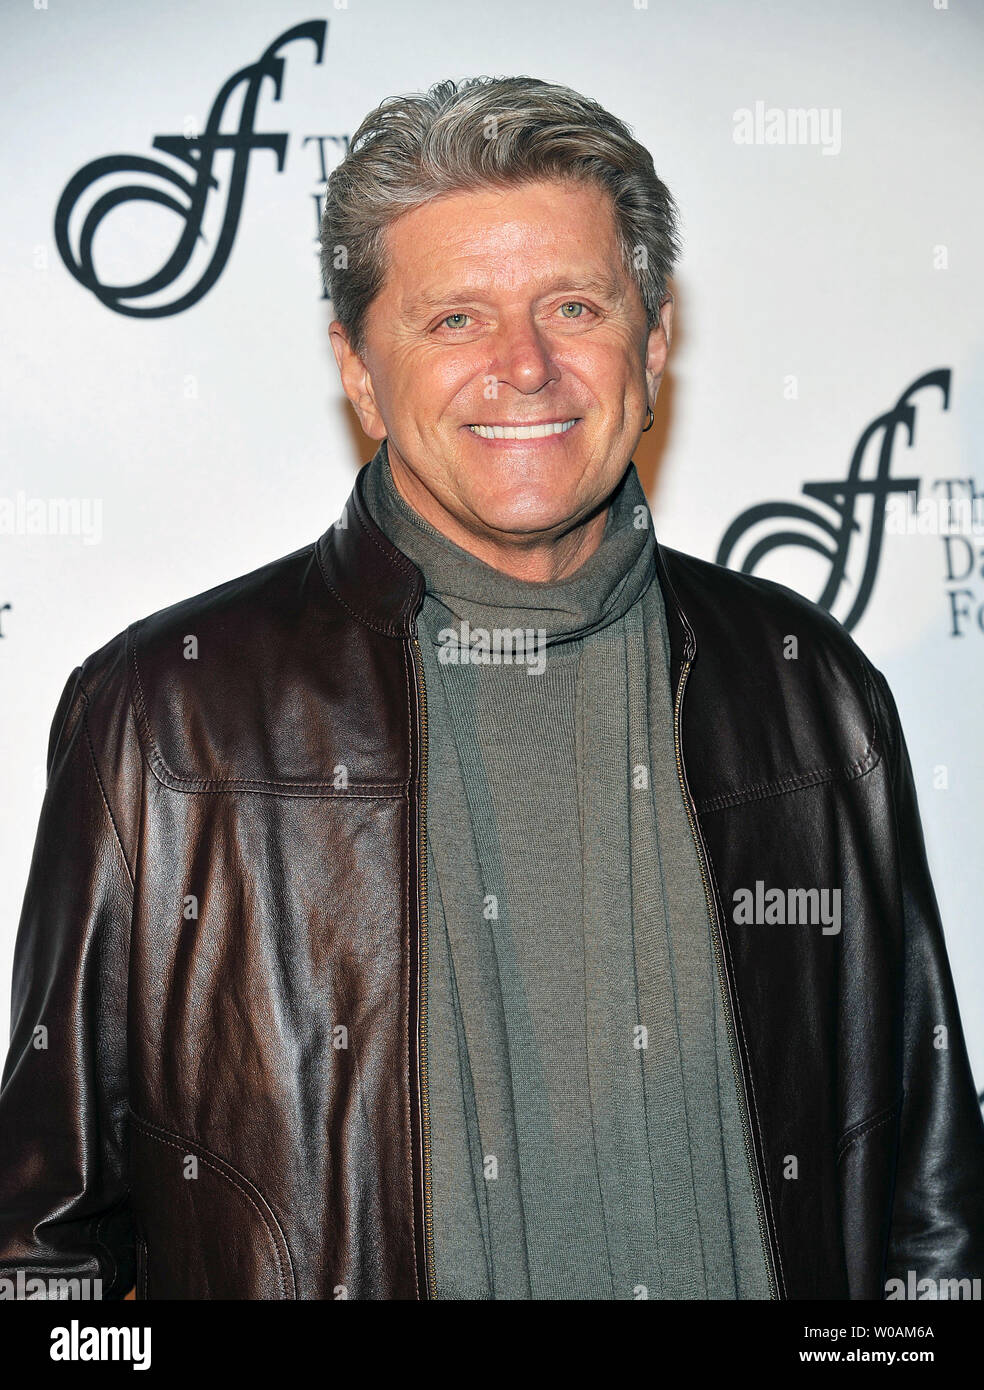 Peter Cetera Member Of Iconic Rock Band Chicago Attends The David Foster Foundation Fundraiser In Support Of Organ Donor Awareness In Toronto Canada On November 19 2010 Upi Christine Chew Stock Photo Alamy